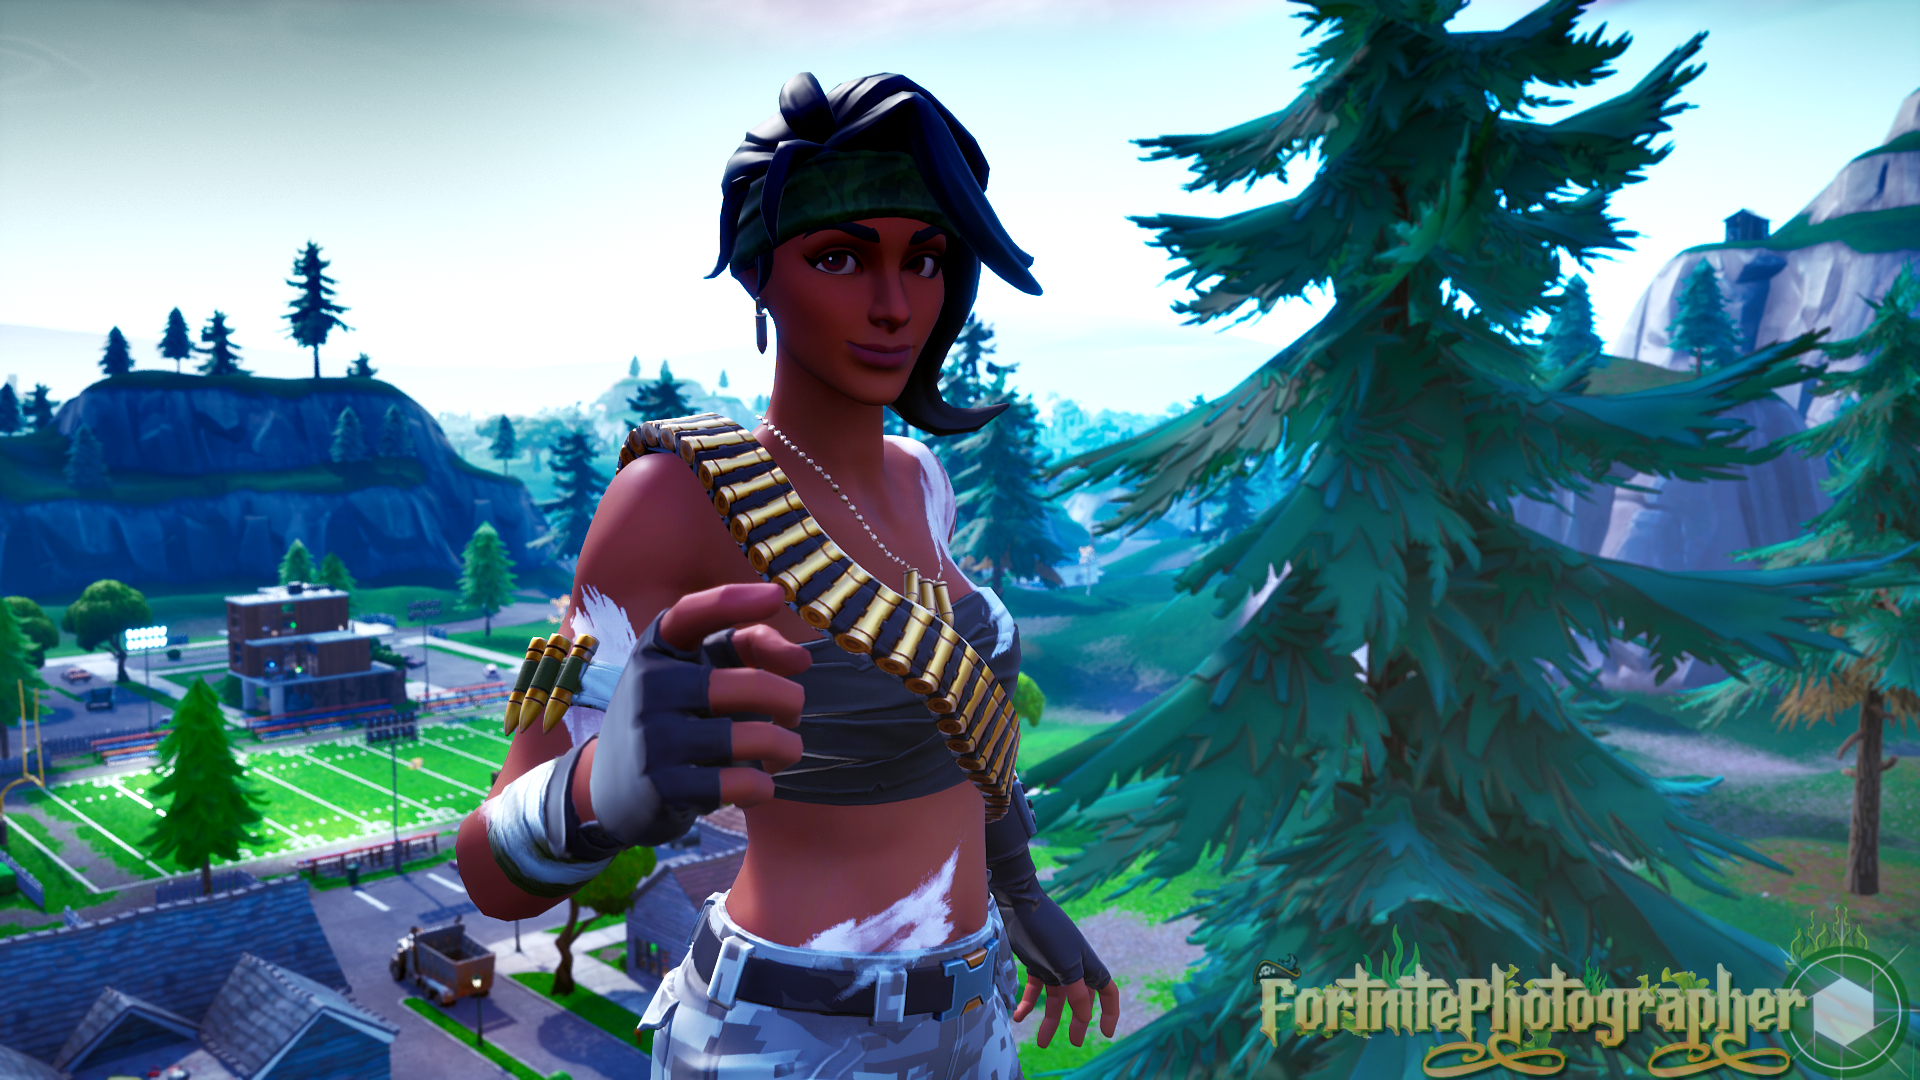 Almost 100 Followers Twitter Thank You All So Much 3 Only 13 Left Bonus Shots Bandolette Set 01 1 2 Fnphootograph Fortnite Wonder Woman Photography